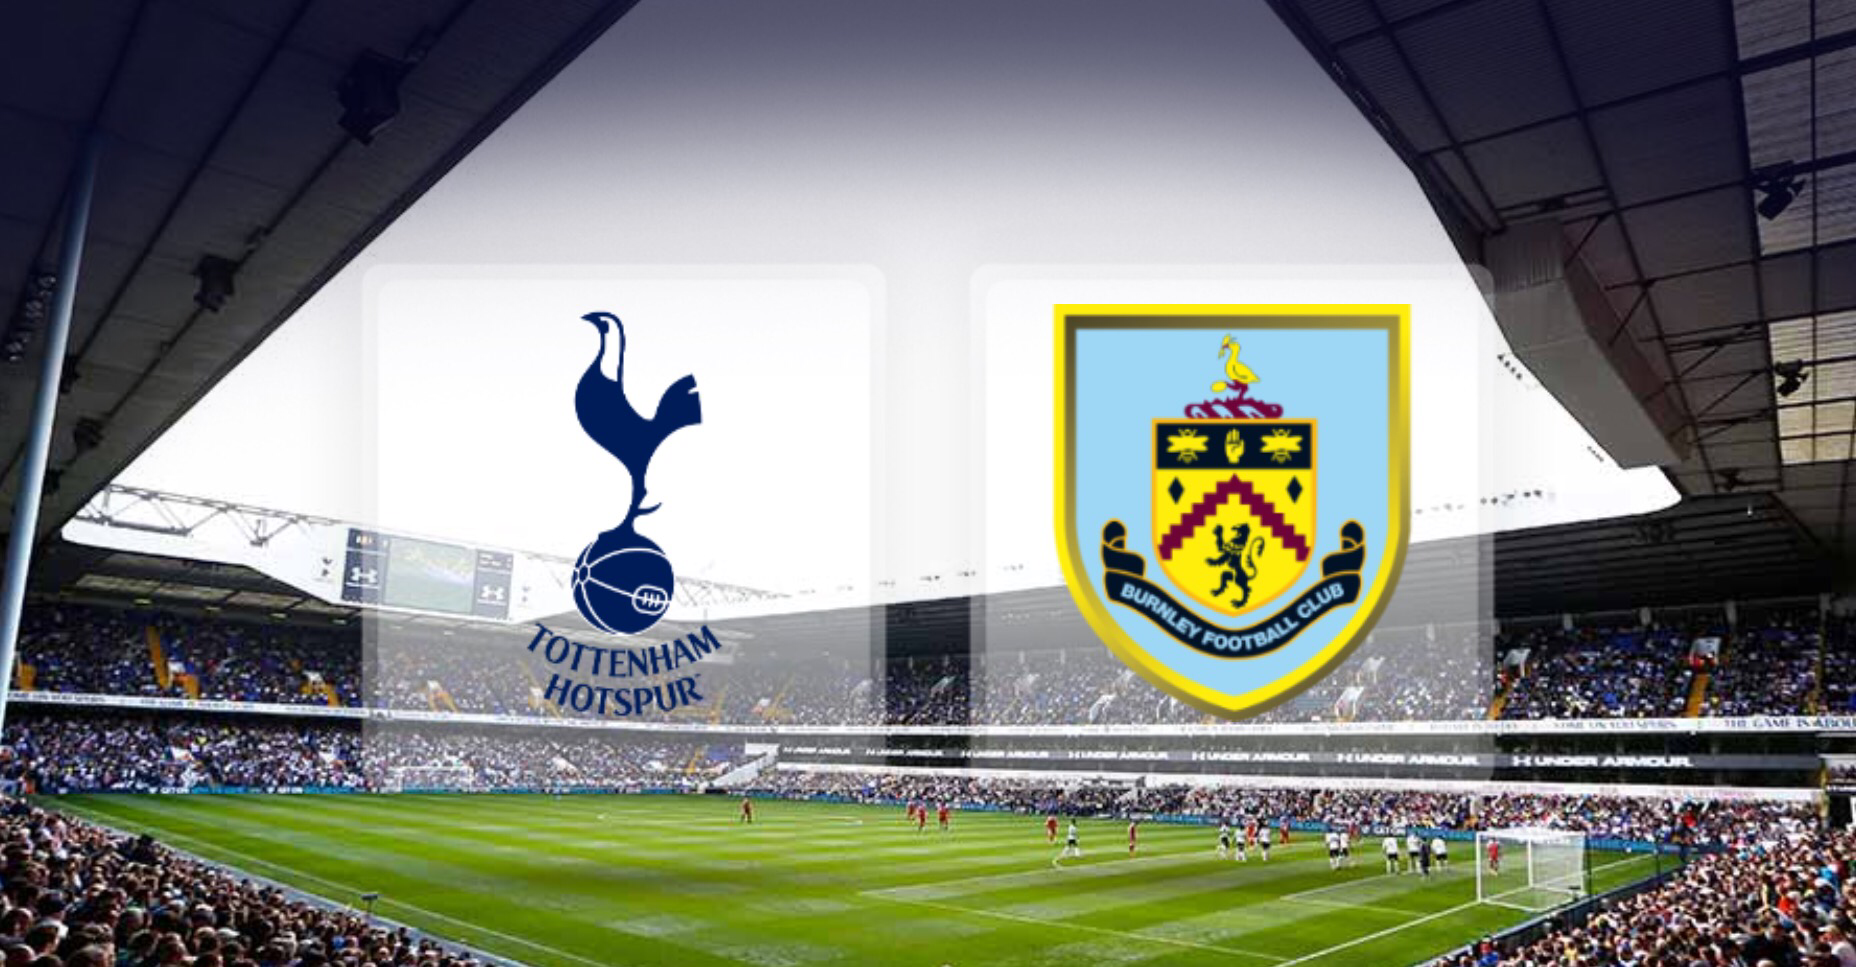 tottenham-hotspur-v-burnley